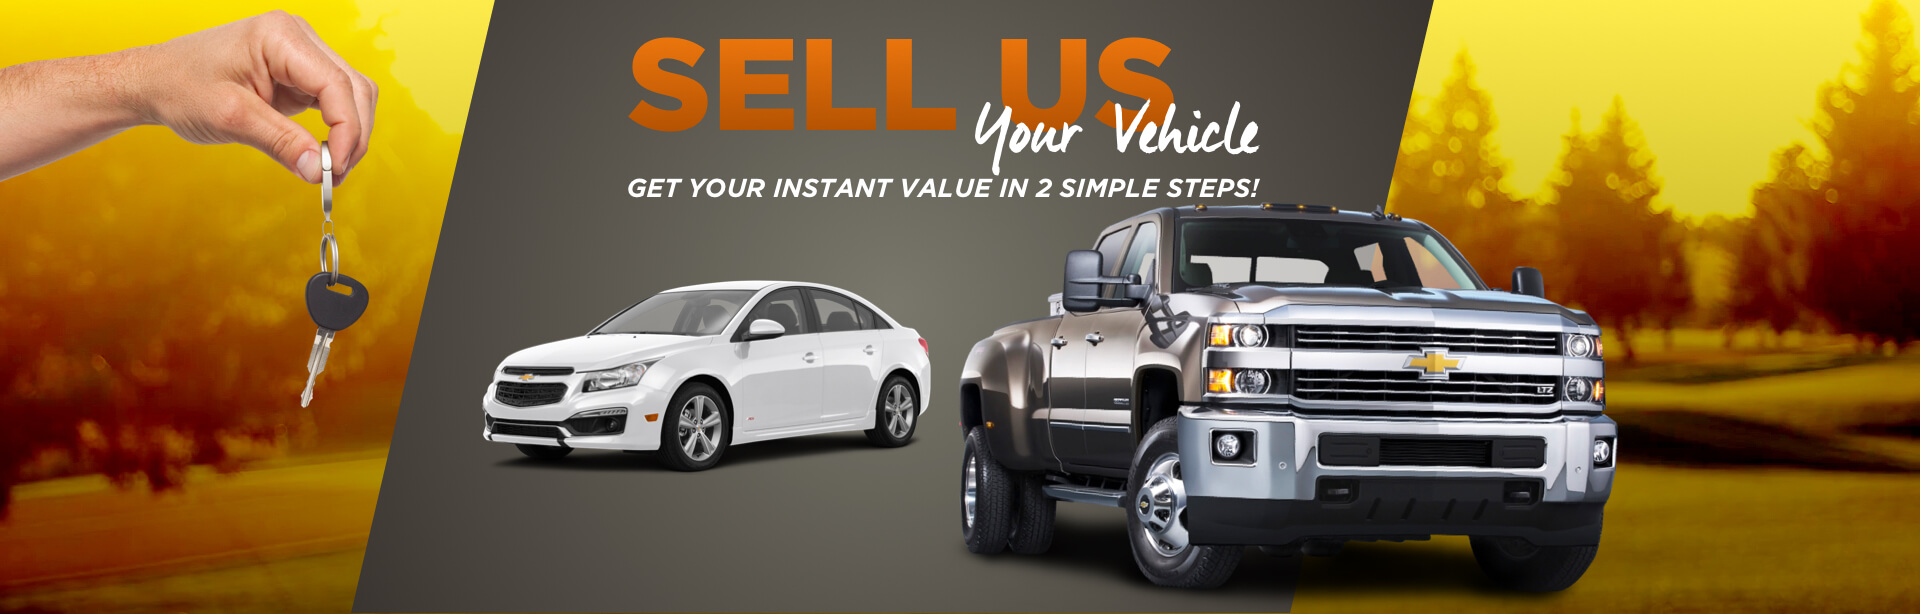 Sell Us Your Vehicle - Get Your Instant Values in 2 simple steps!